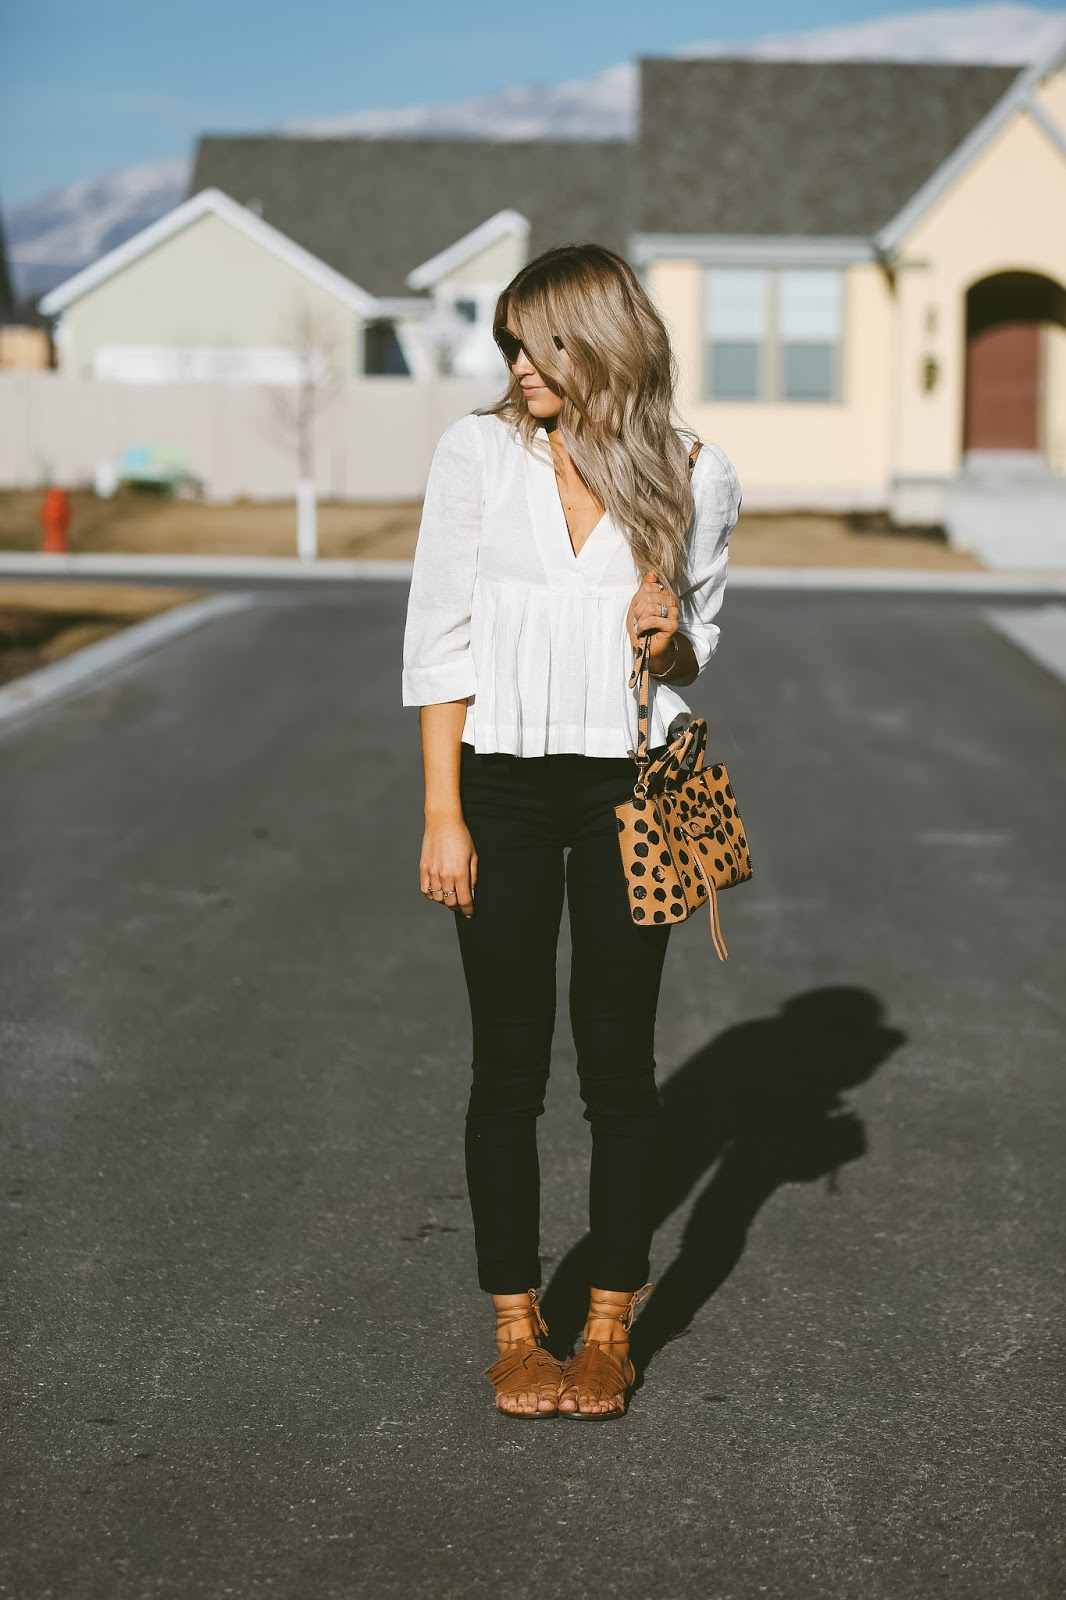 Monochrome will simple never go out of trend! Cara Loren wears a contrasting black and white outfit consisting of a floaty v neck blouse and skinny black jeans. Wear this look with gladiator sandals to steal Cara's spring style. Top: Free People, Jeans: J Brand, Sandals: Steve Madden.